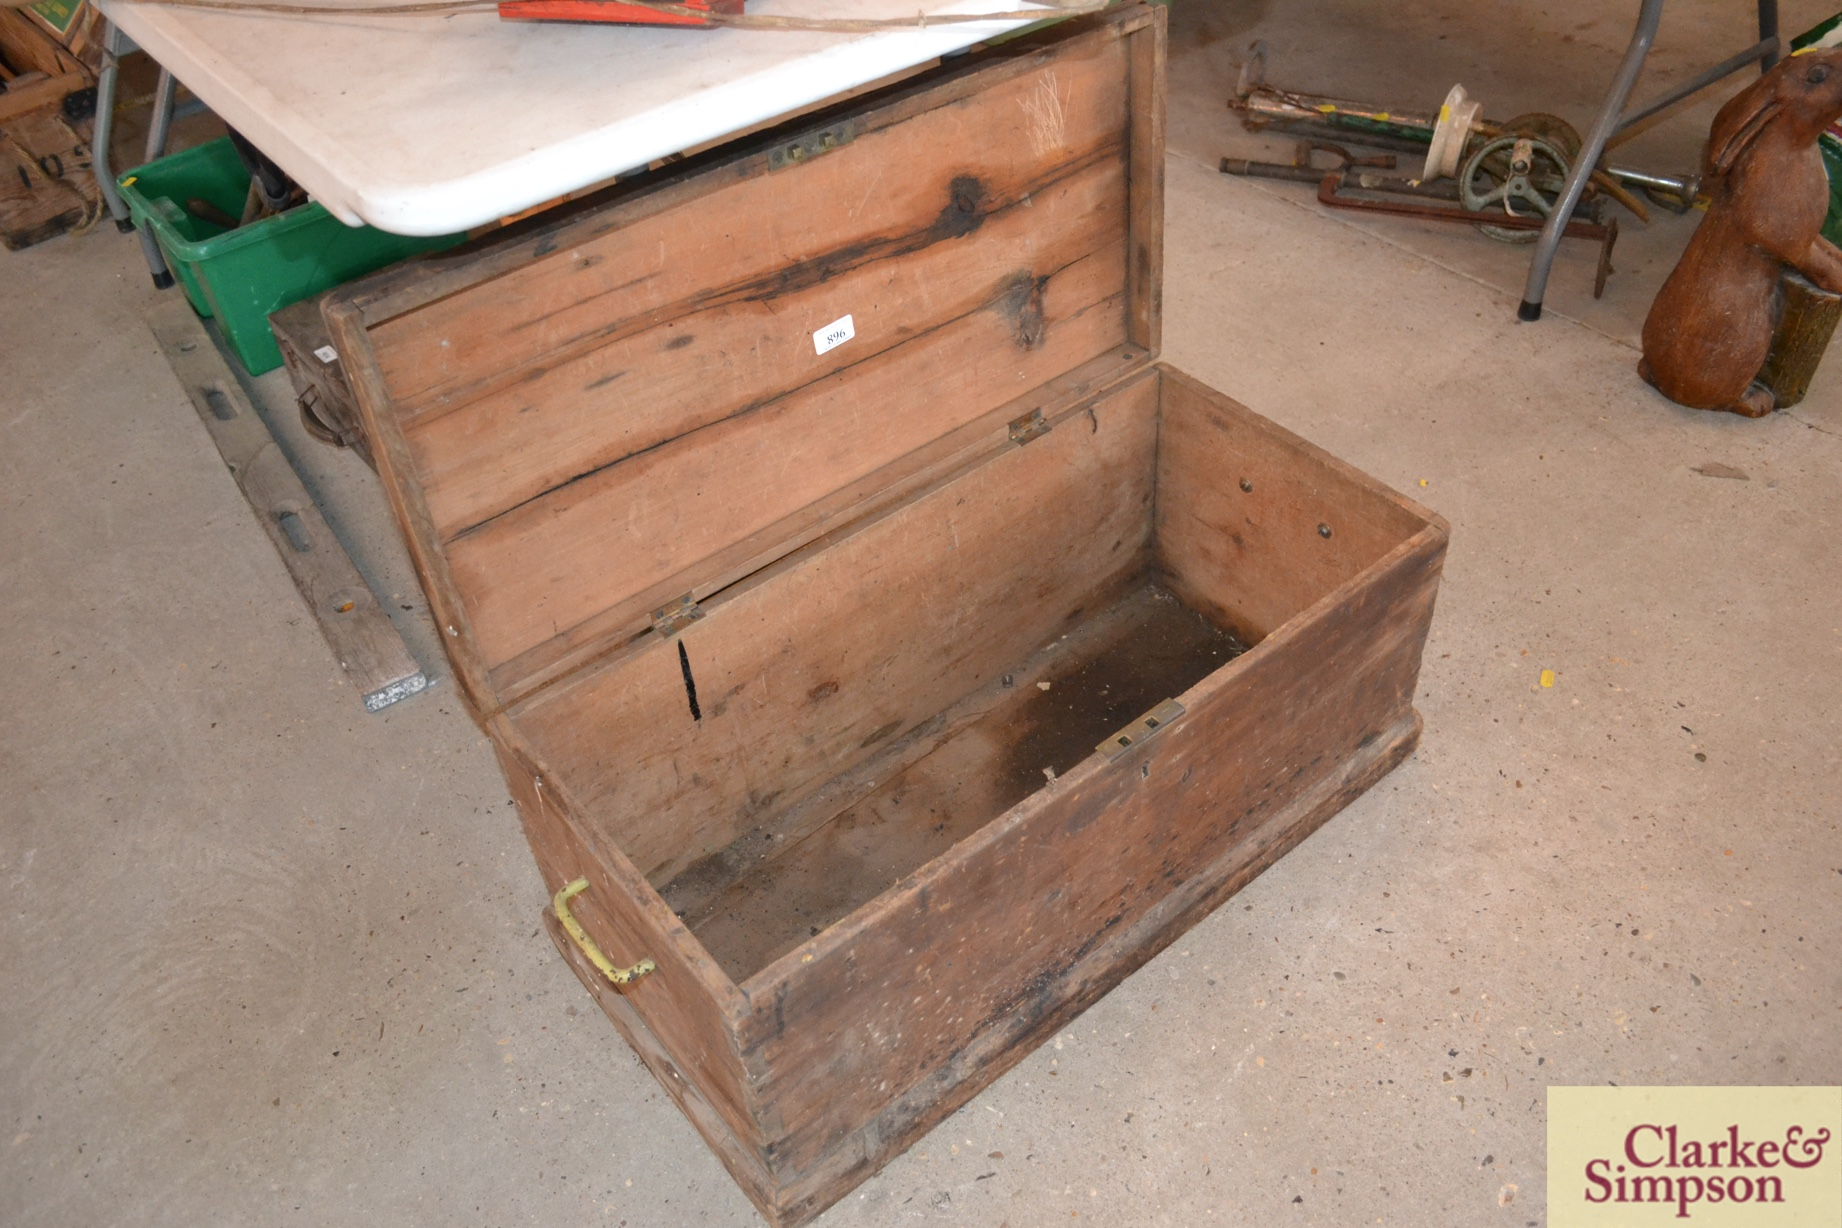 A vintage pine wooden tool box